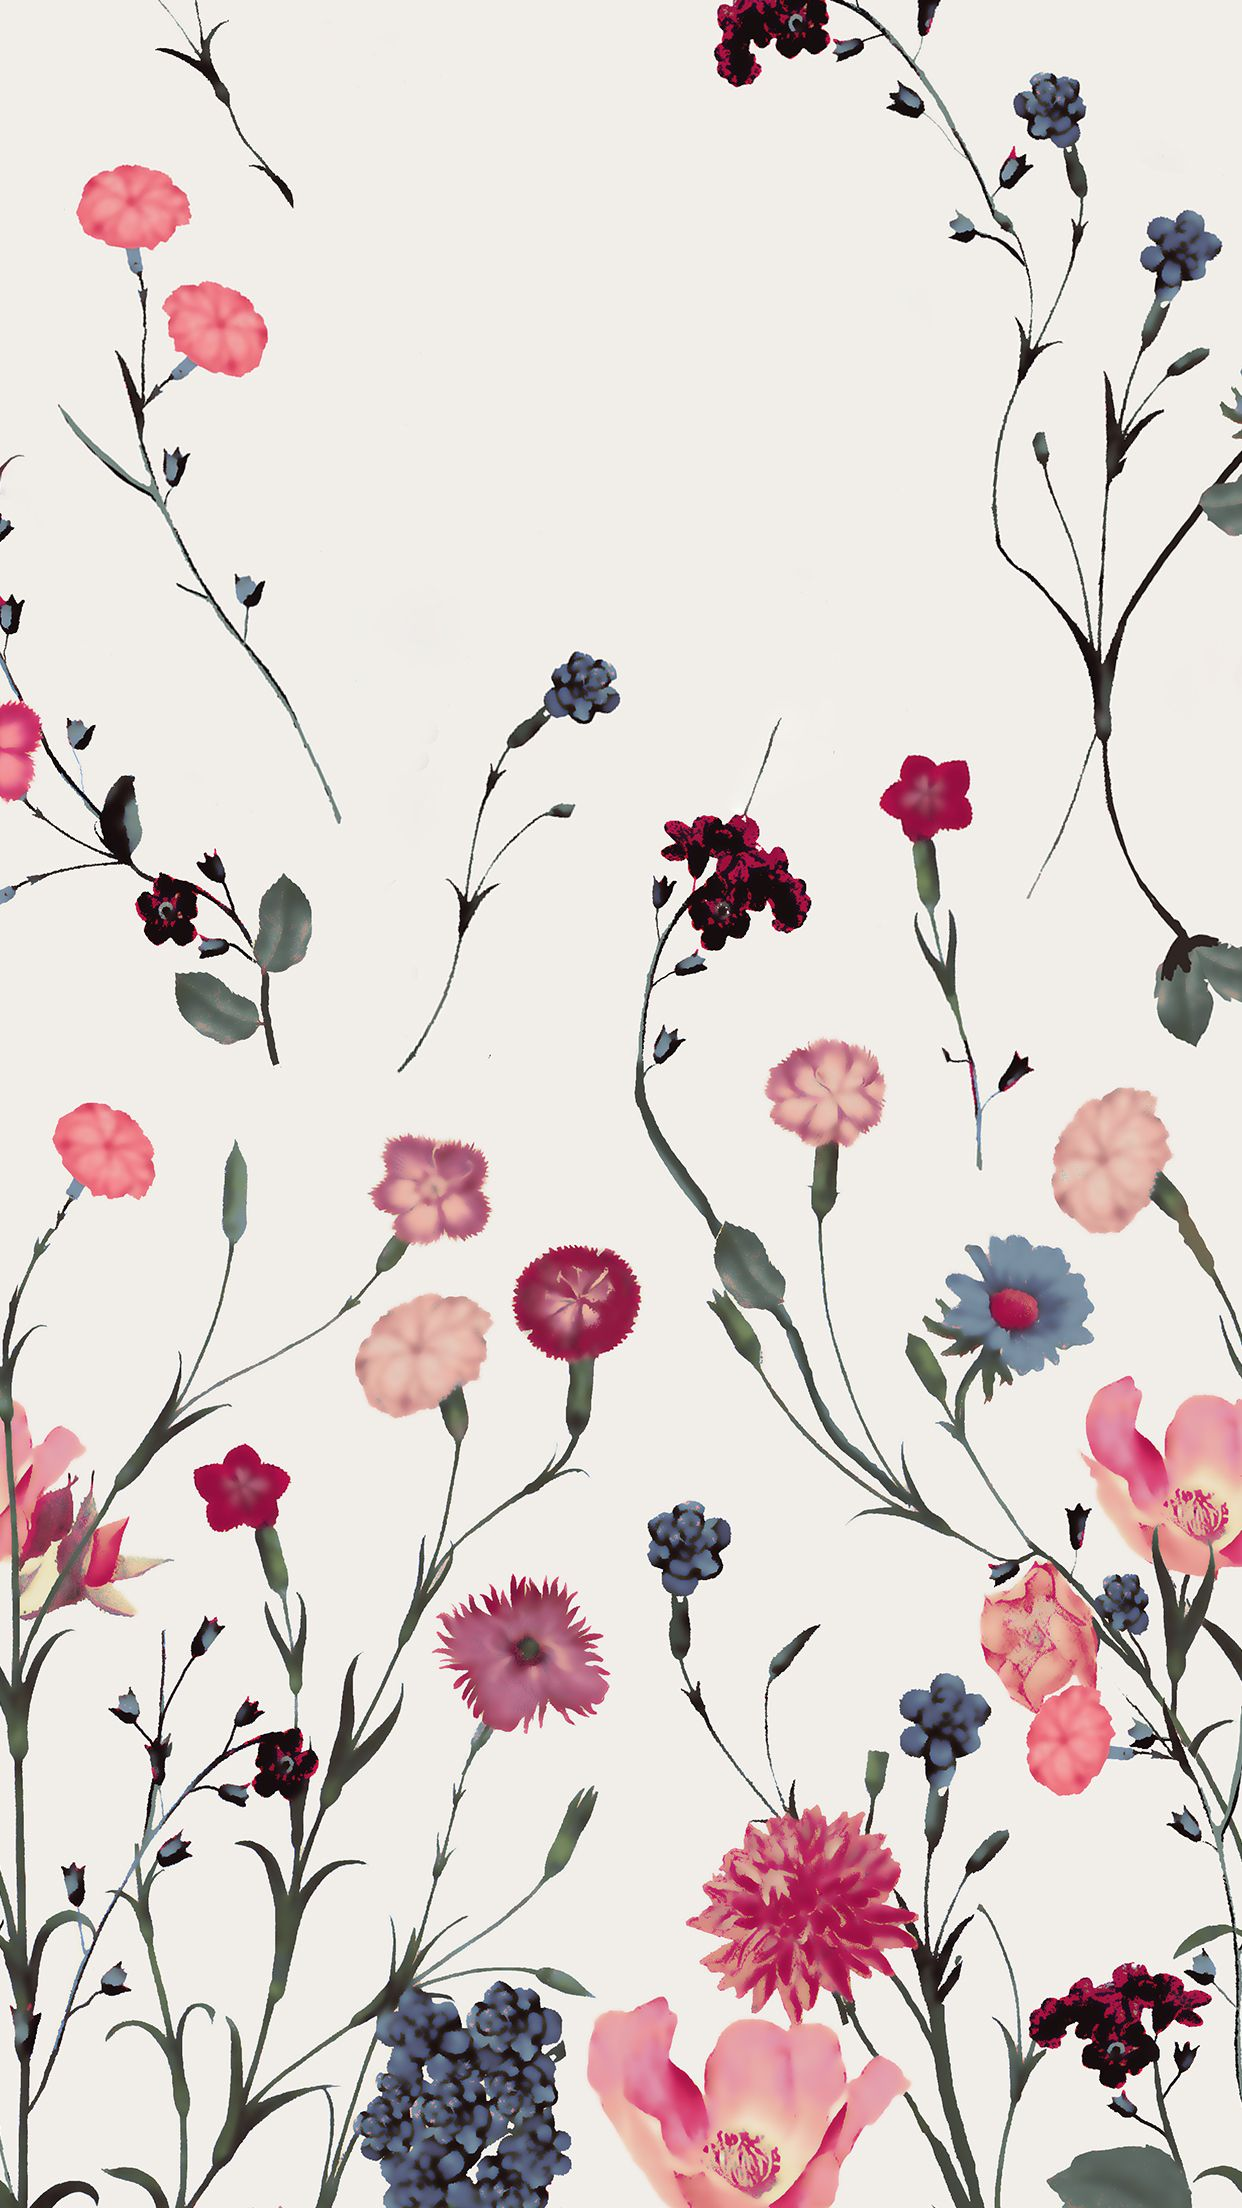 Februaryiphonebackgroundv2g 12422208 floral wallpaper fostergingerpinterestmore pins like this one at fosterginger pinterest no pin limits voltagebd Images